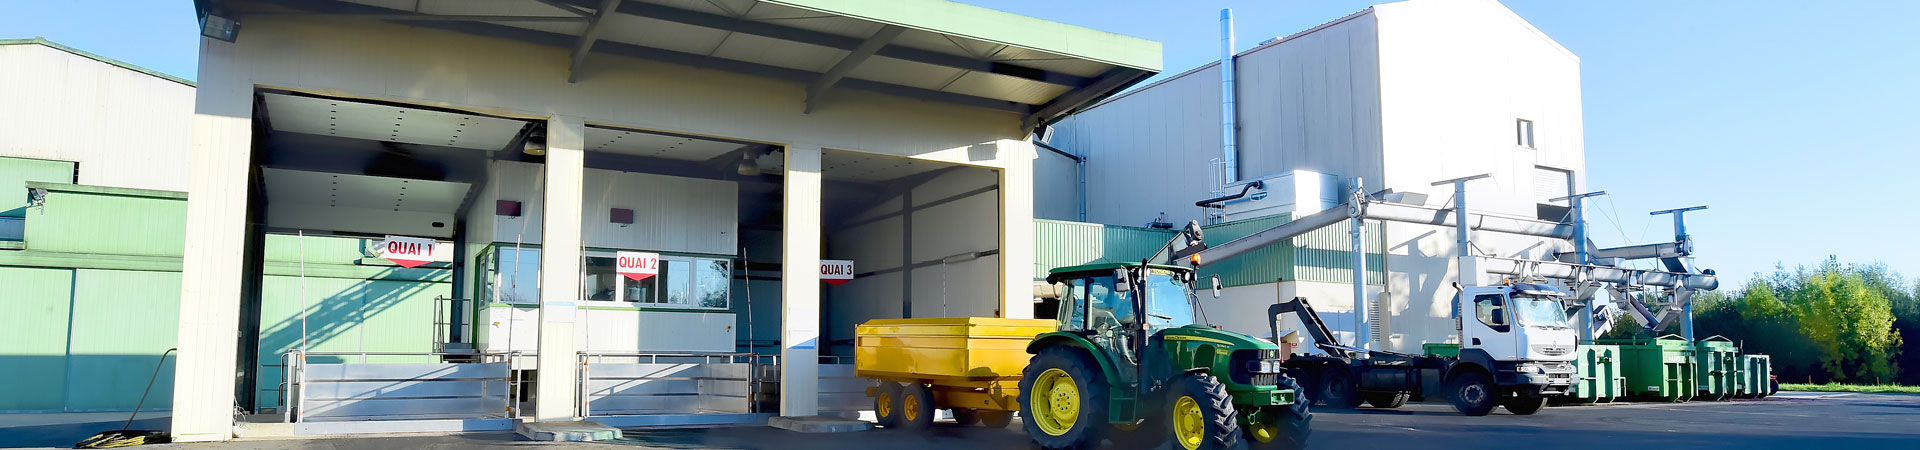 Pera Pellenc, manufacturer of receiving hoppers